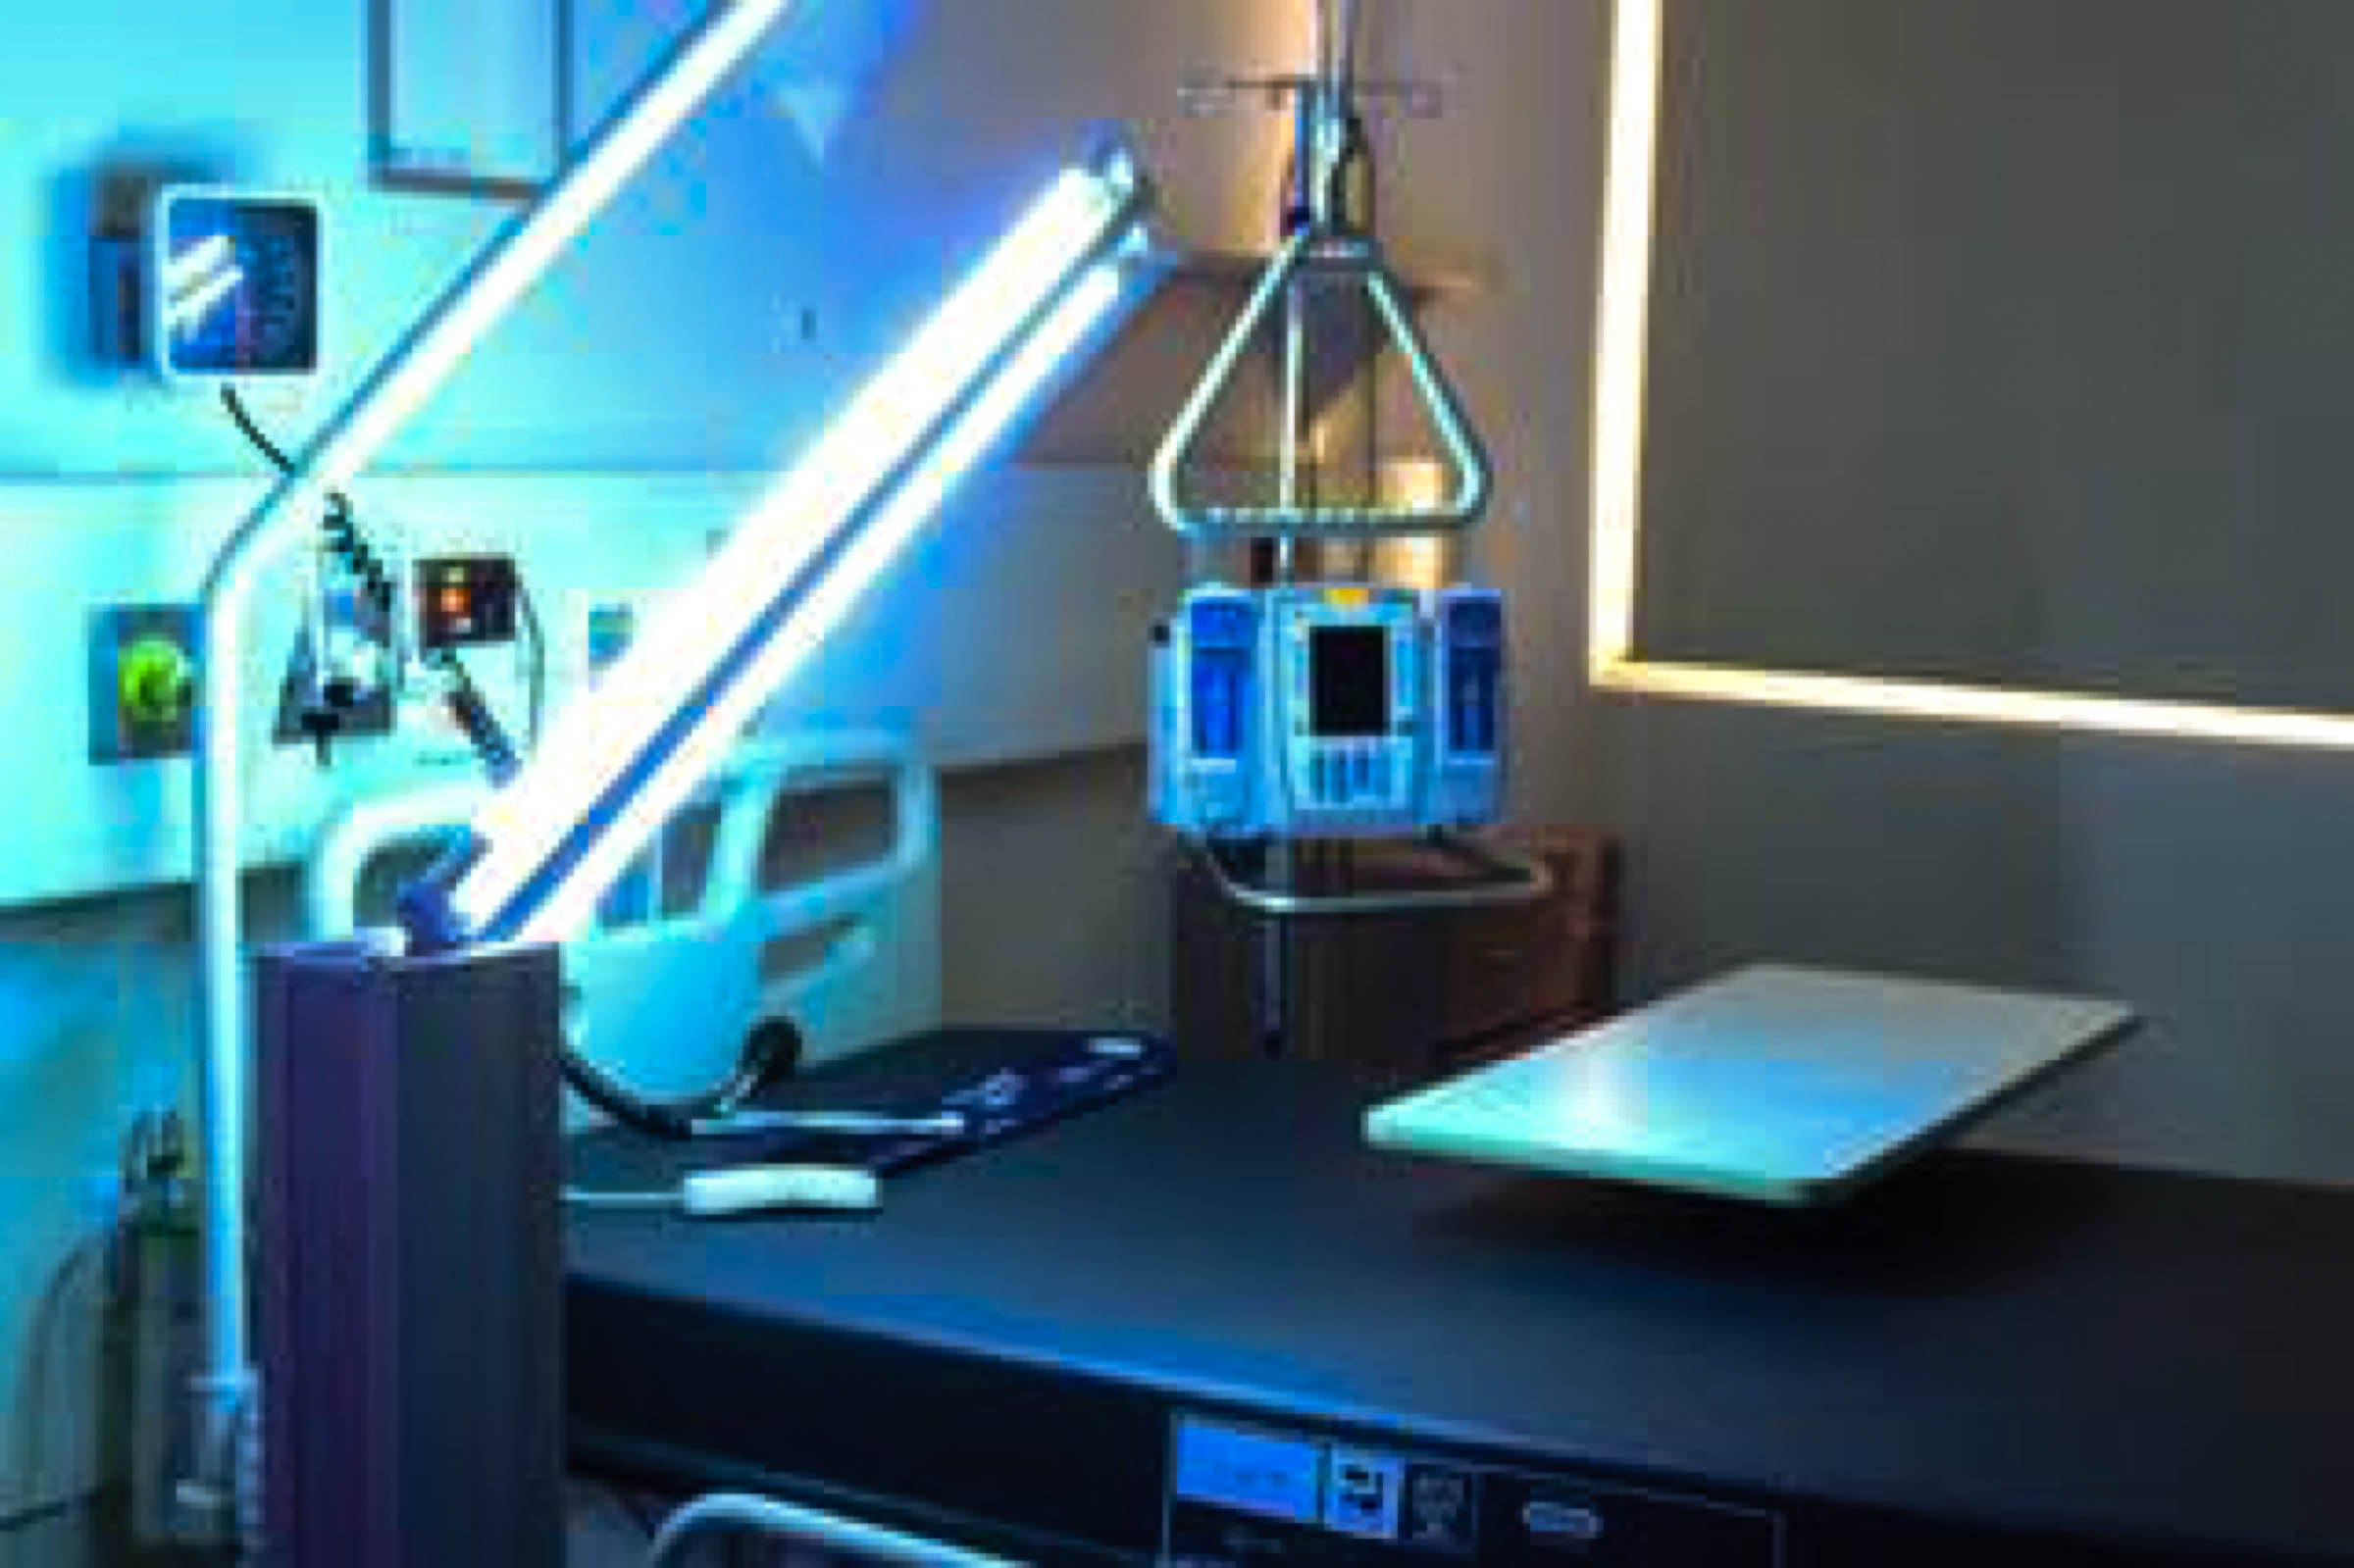 UV disinfection of rooms and equipment